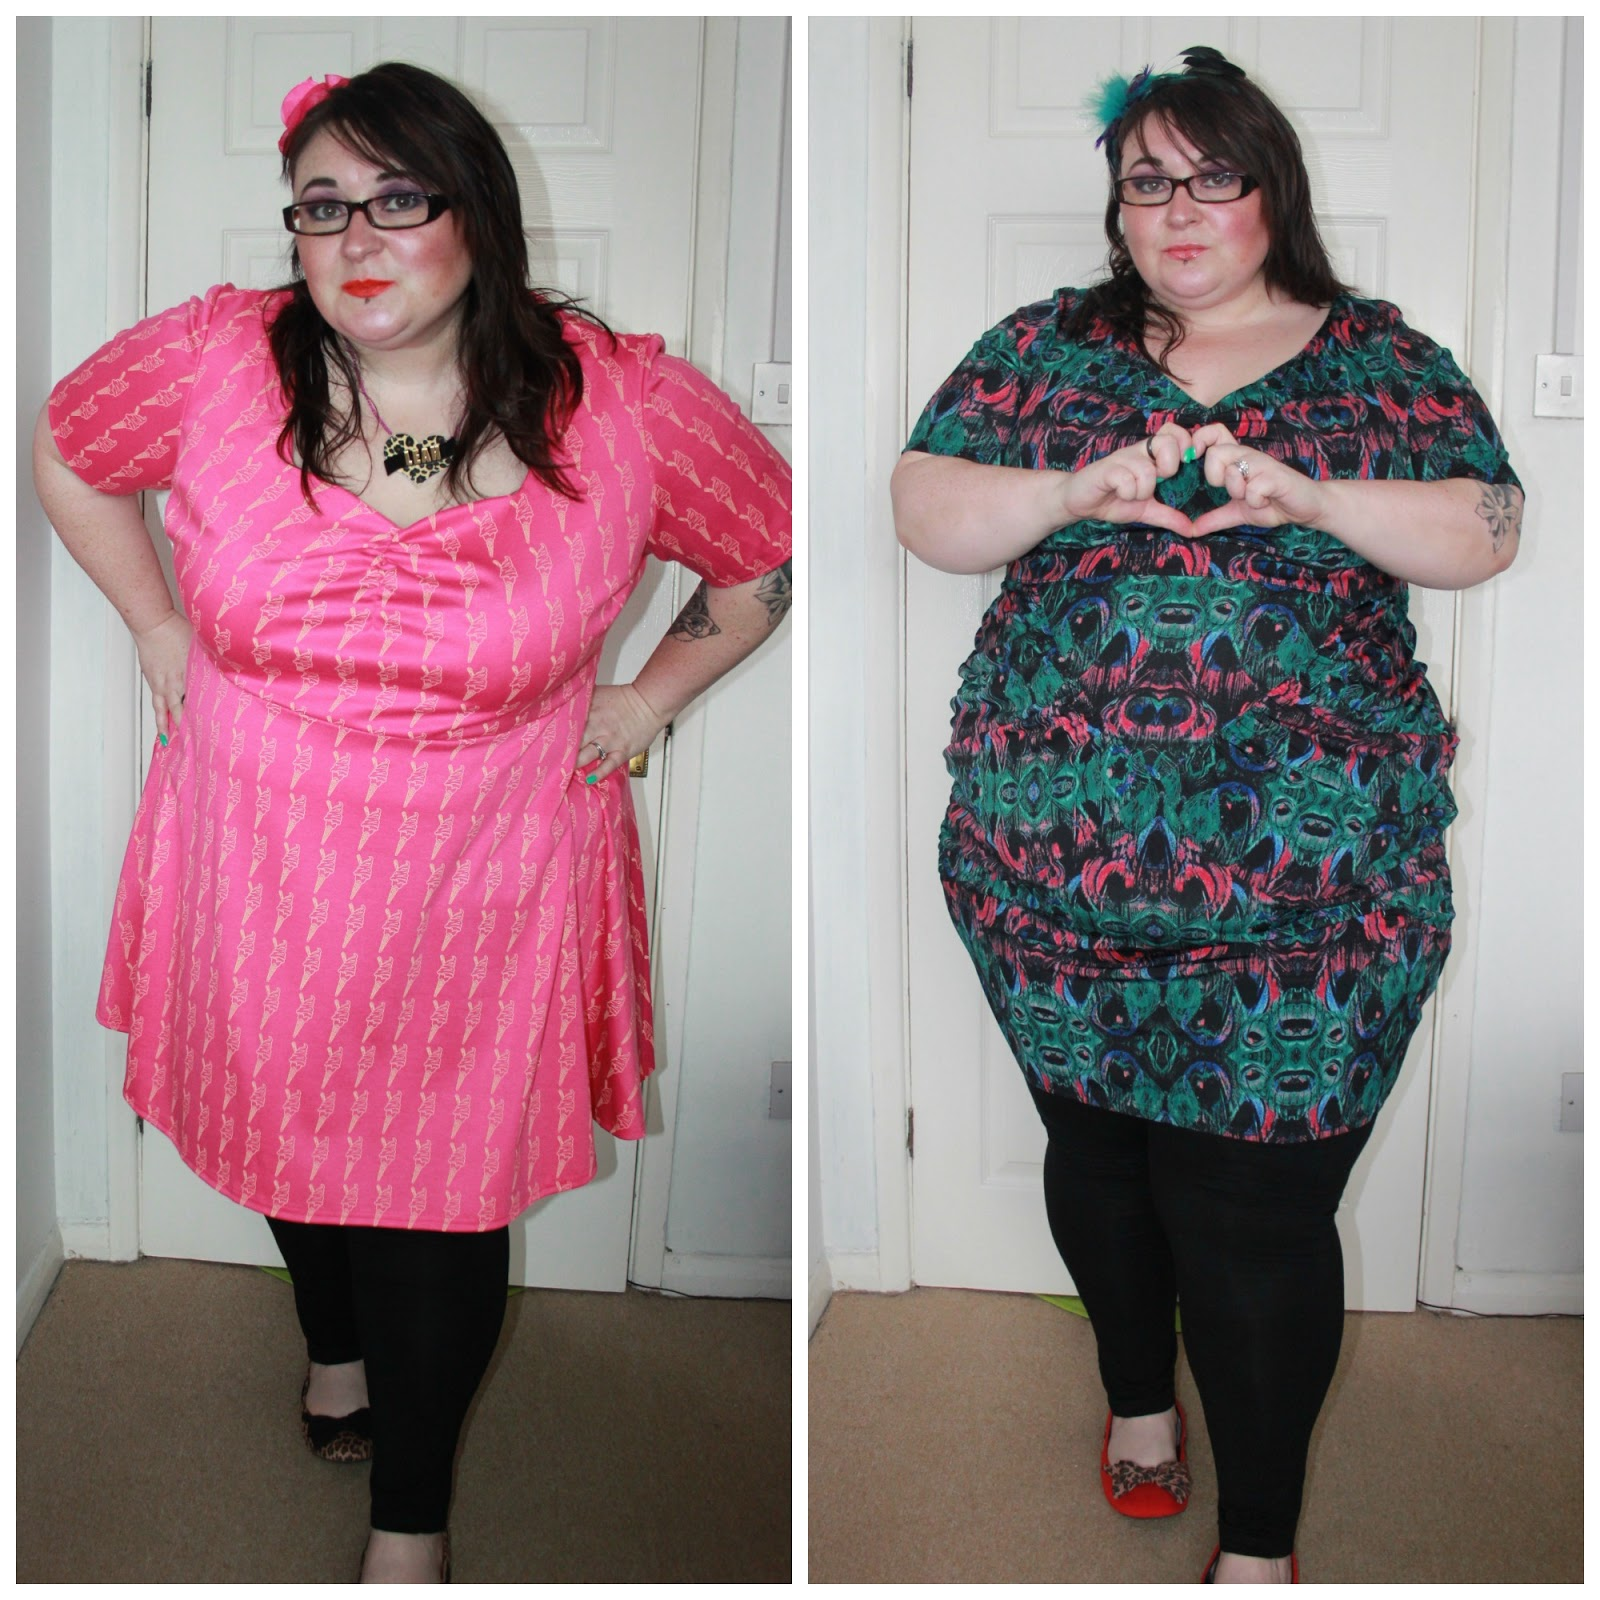 plus size dresses 24-26